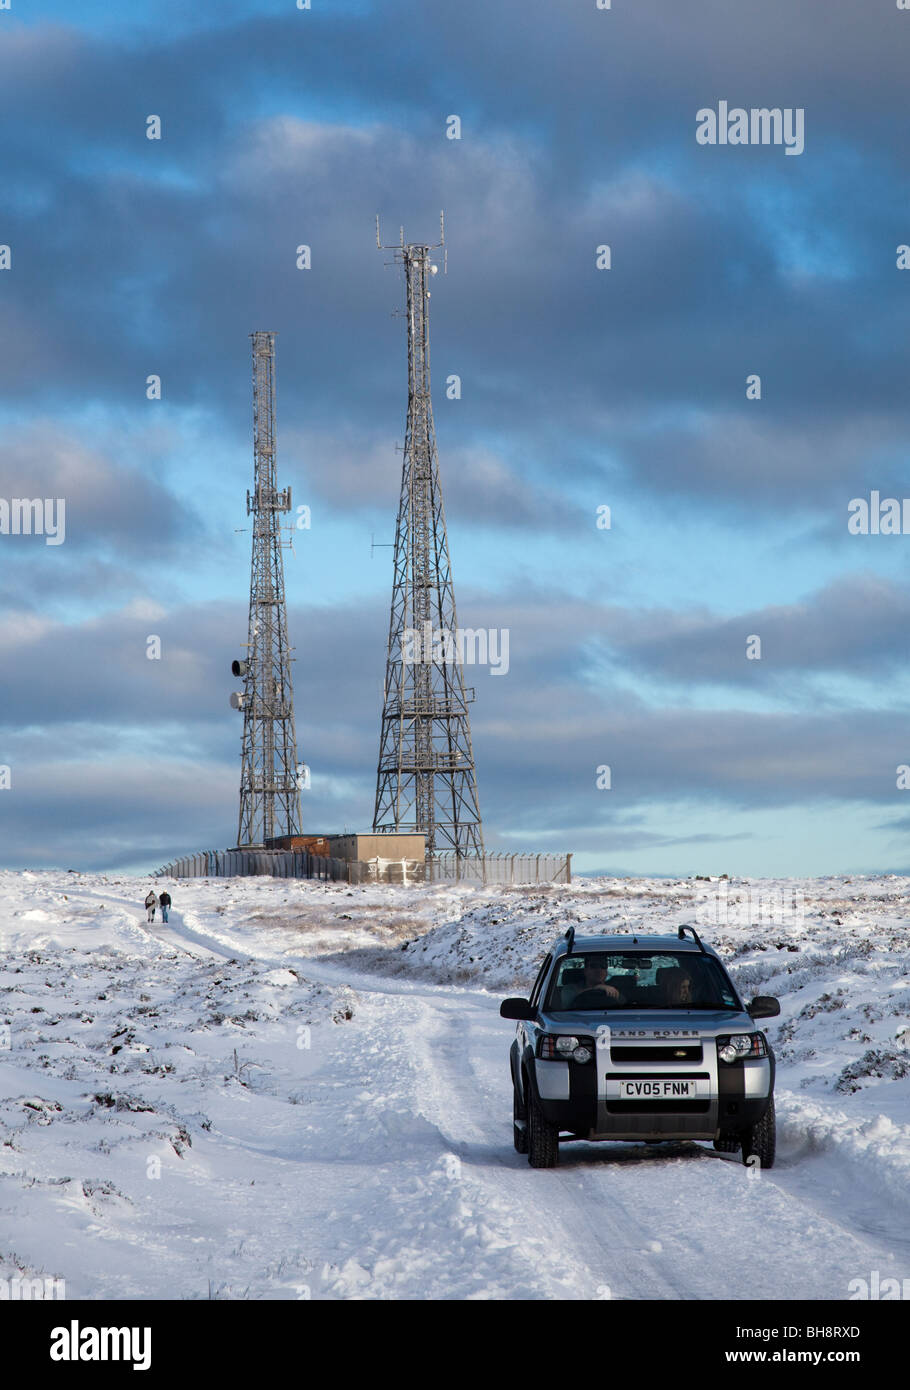 Land Rover vehicle on snowy road on moorland with aerial masts in winter Blorenge Wales UK - Stock Image